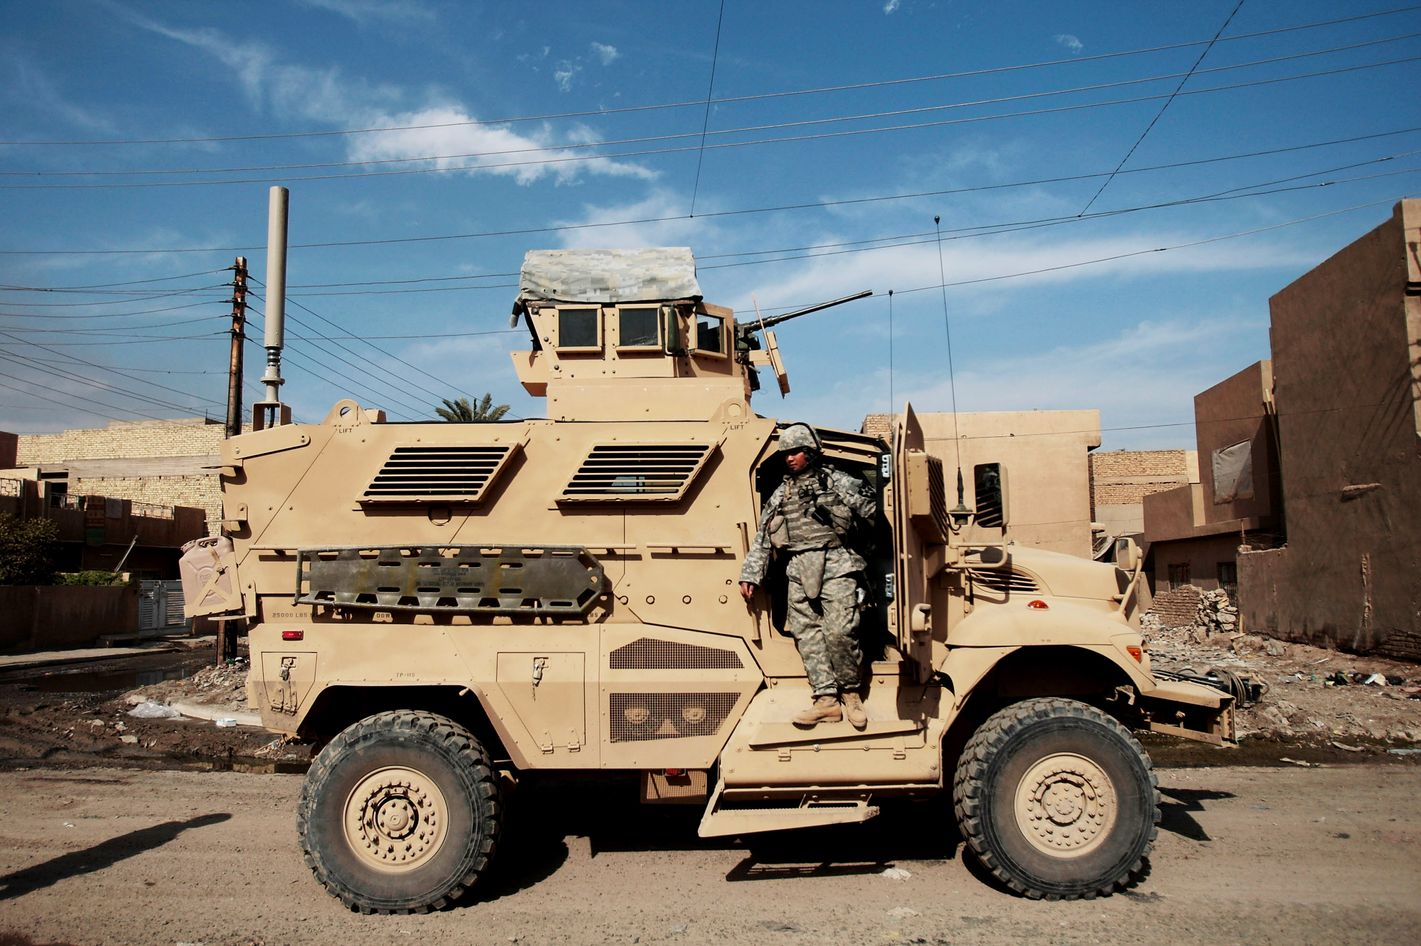 A soldier with the U.S. Army's  2-12 infantry stands on a  MRAP vehicle while on patrol  November 17, 2007  in Baghdad, Iraq.  MRAPs are a family of mine-resistant transport vehicles; a set recently arrived at FOB Falcon are simply called MRAPs by the soldiers but are technically called International MaxxPro Category 1.  Some commanders in the U.S.  military see MRAPs as eventual replacements for the ageing Humvee, though the vehicles large size and other factors have given other commanders paU.S. e.  MRAPs have a V-shaped hull that allows it to better withstand the blasts of roadside bombs.